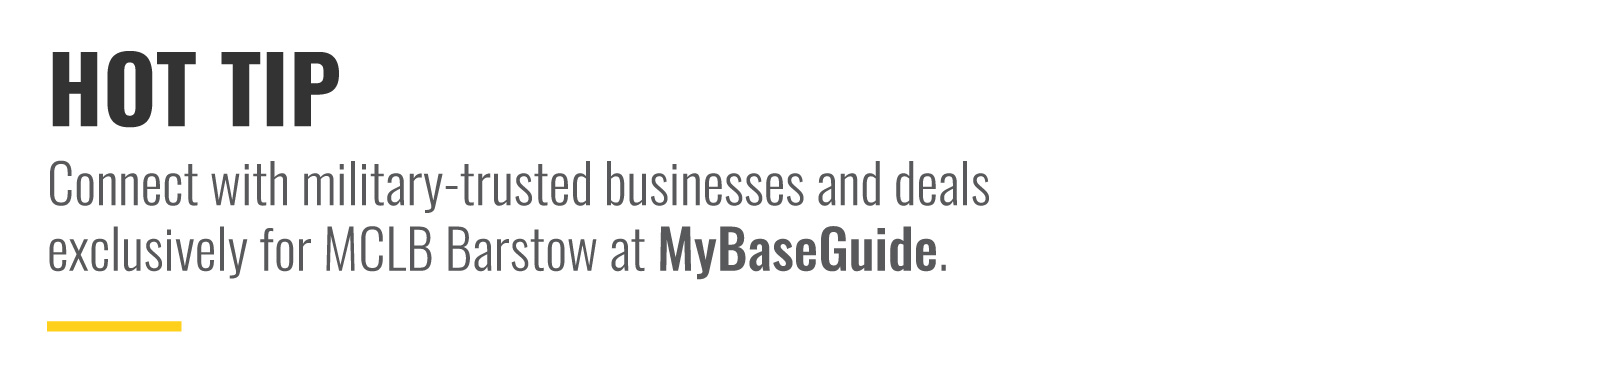 Connect with military-trusted businesses and deals exclusively at MyBaseGuide.com.